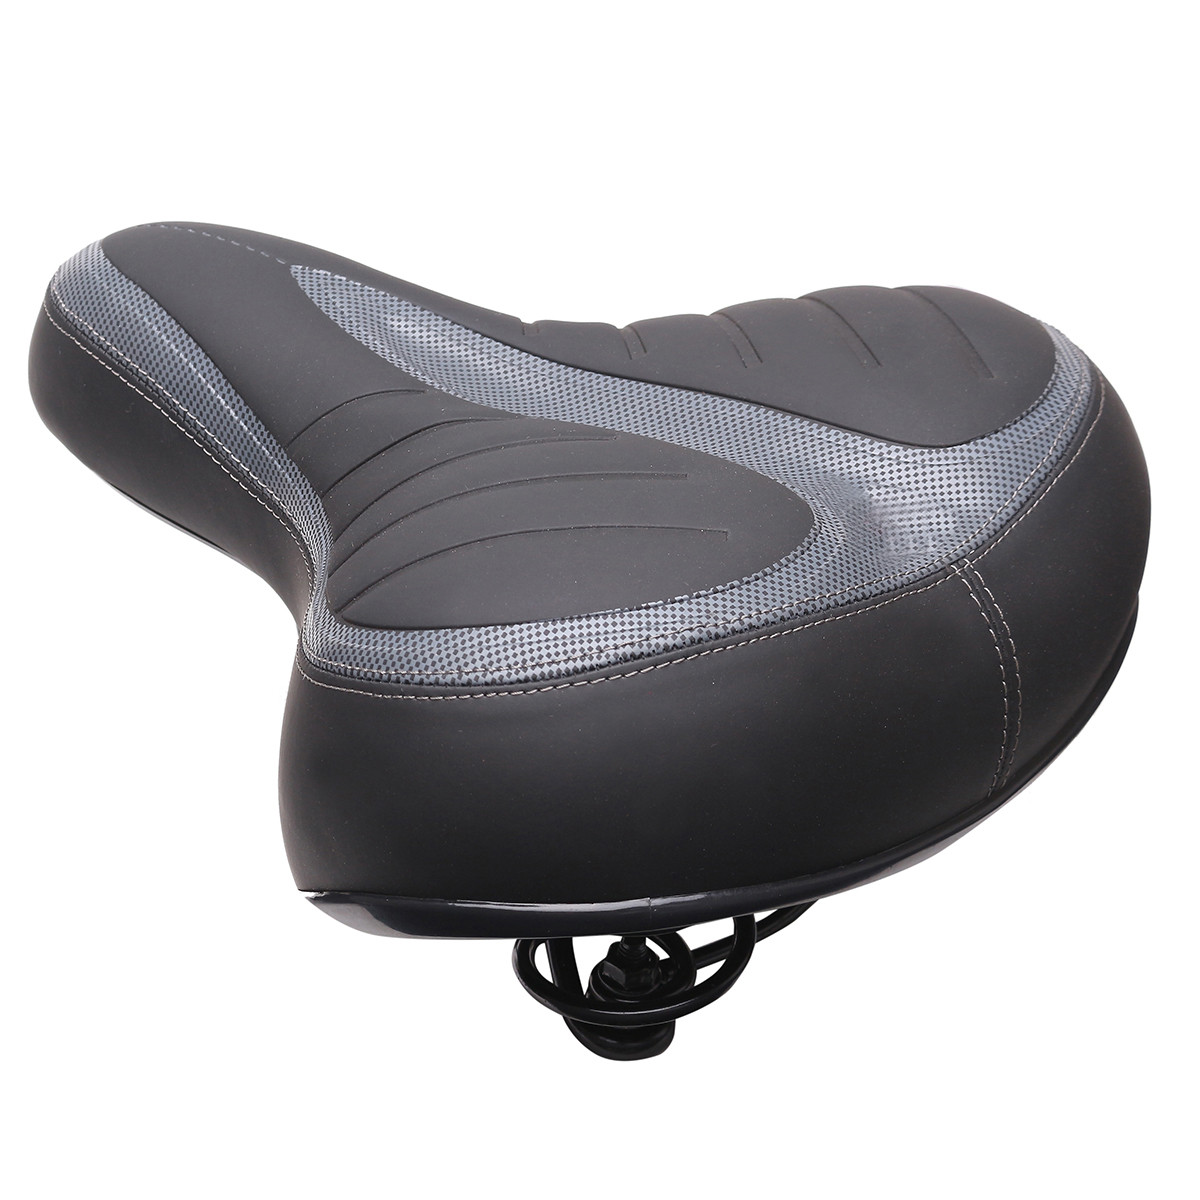 BIKIGHT Wide Big Bum Bike Gel Cruiser Extra Comfort Sporty Soft Pad Saddle Seat